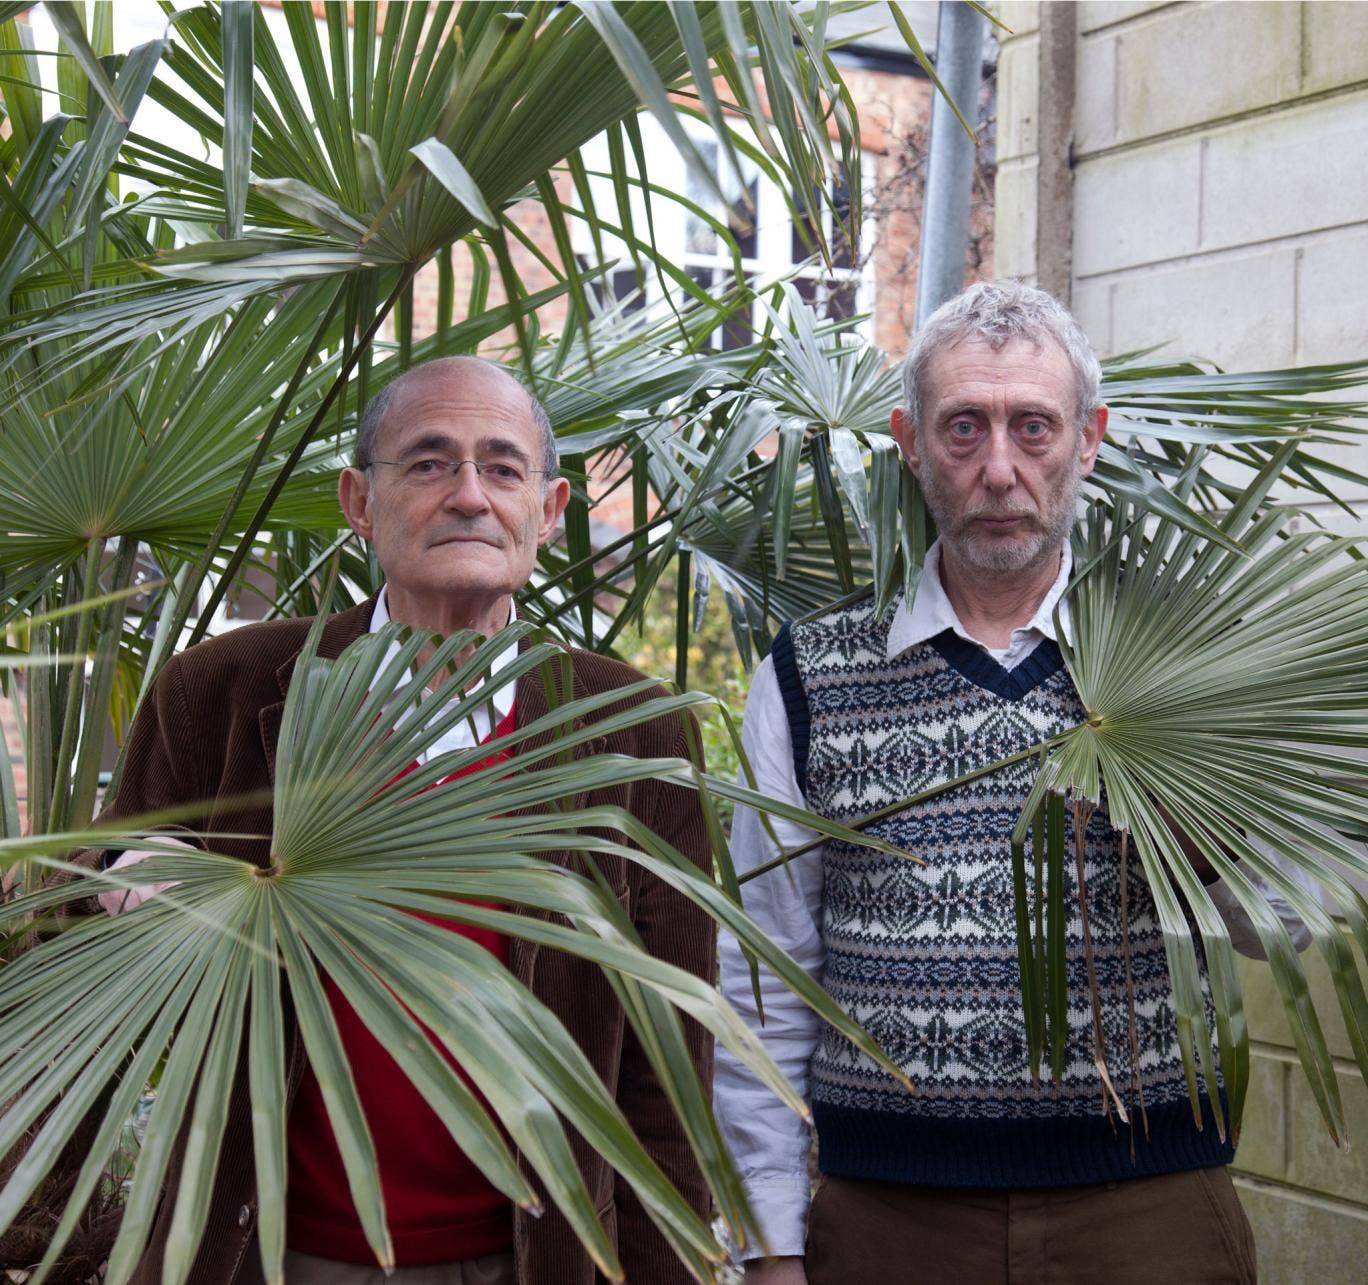 Silma (left) says of Rosen: 'He was the most exhilarating companion, comic and clever'